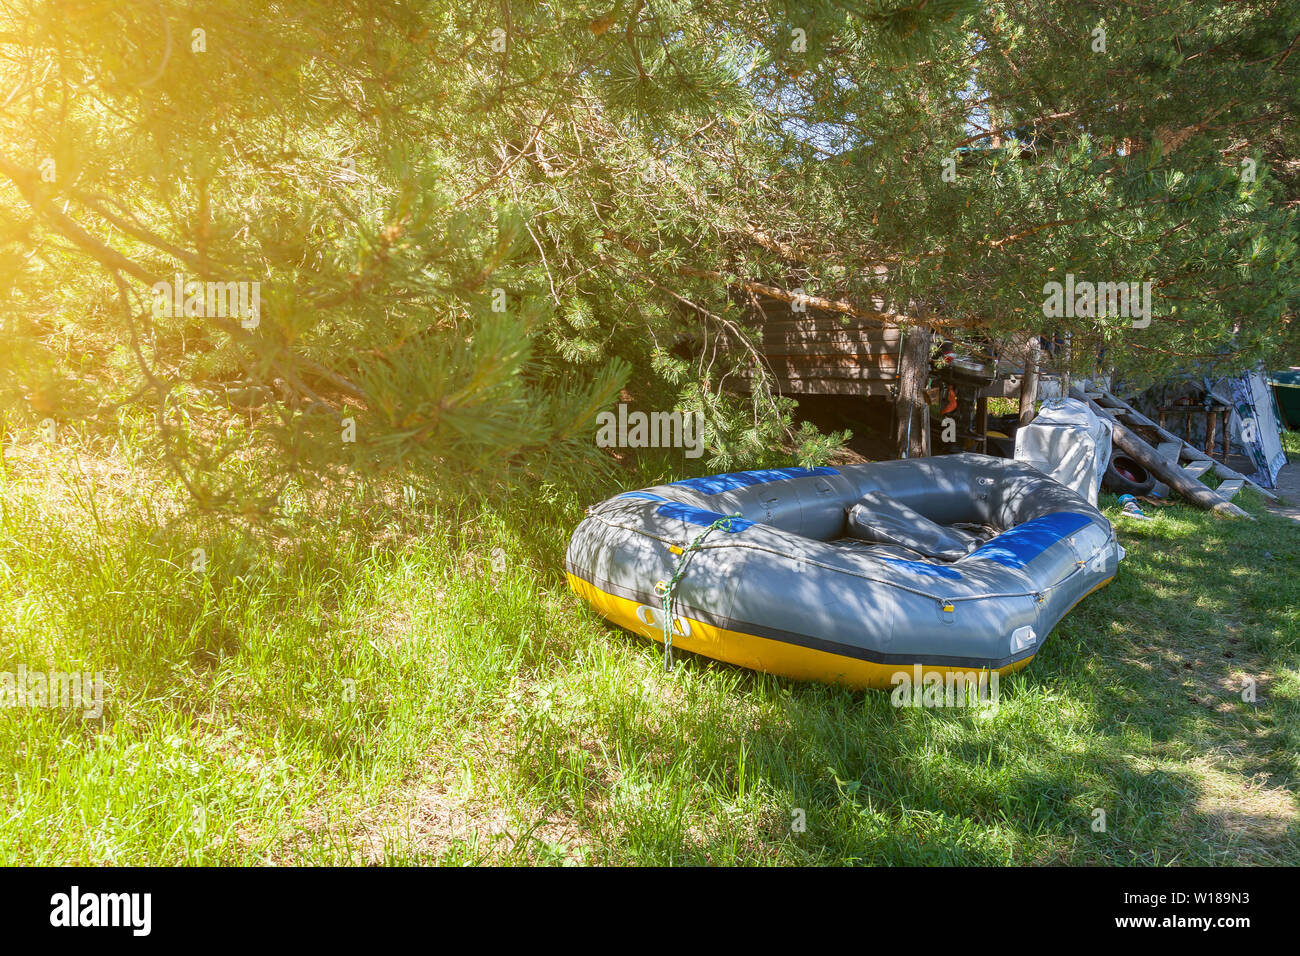 Tent Camping In The Shade Under The Trees With A Wooden ...